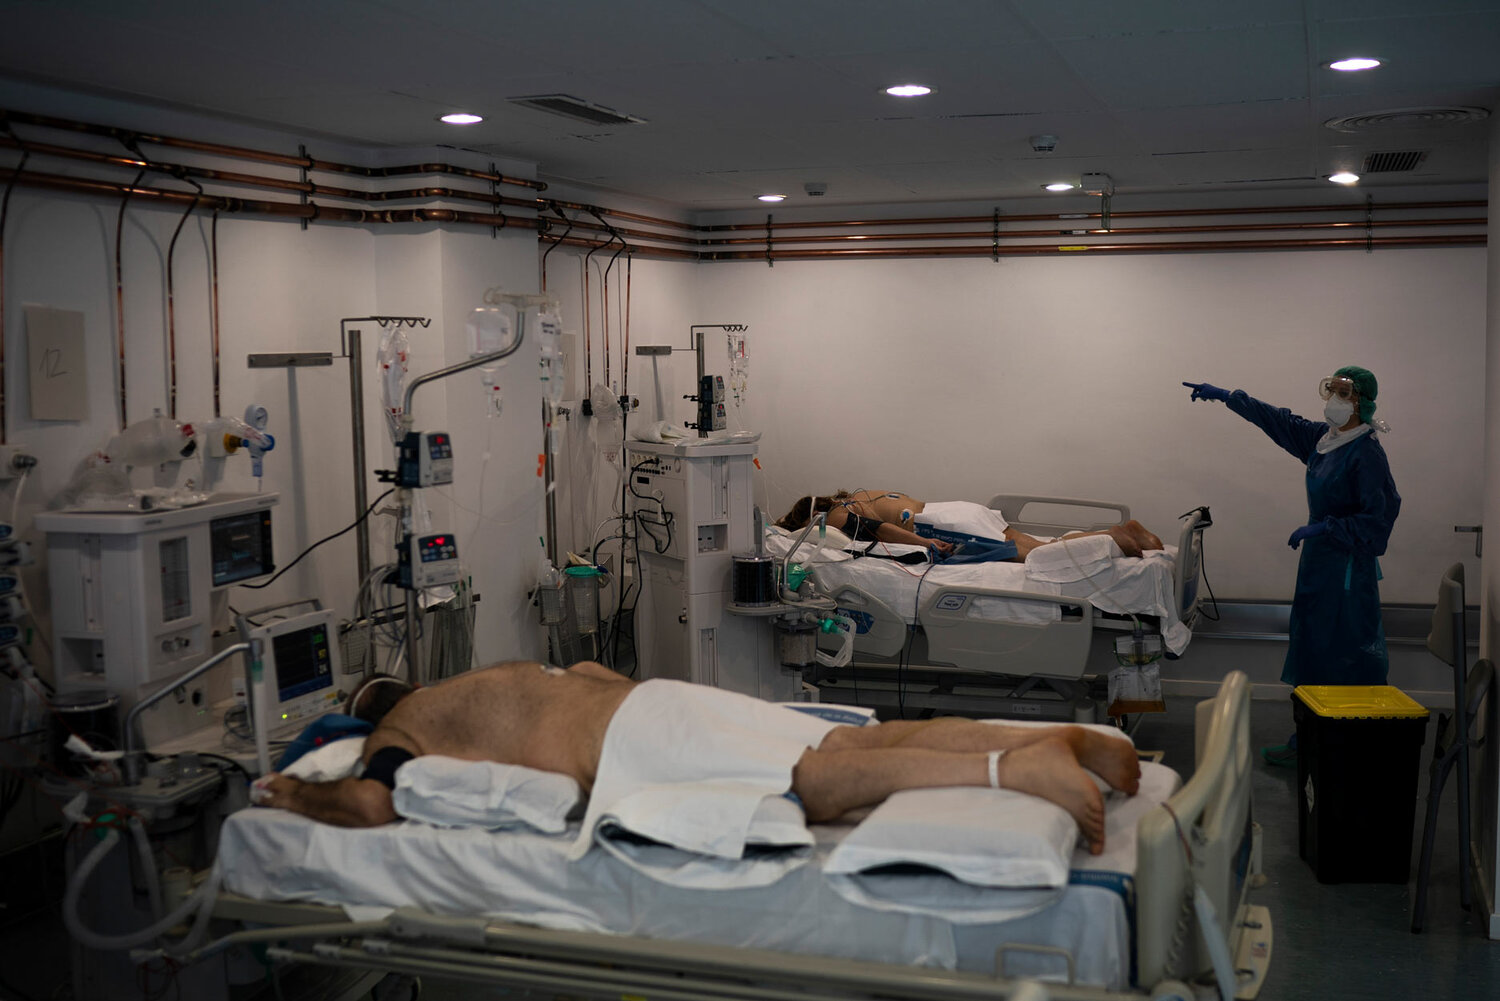 The daily terrors: Improvising in a makeshift ICU in Spain